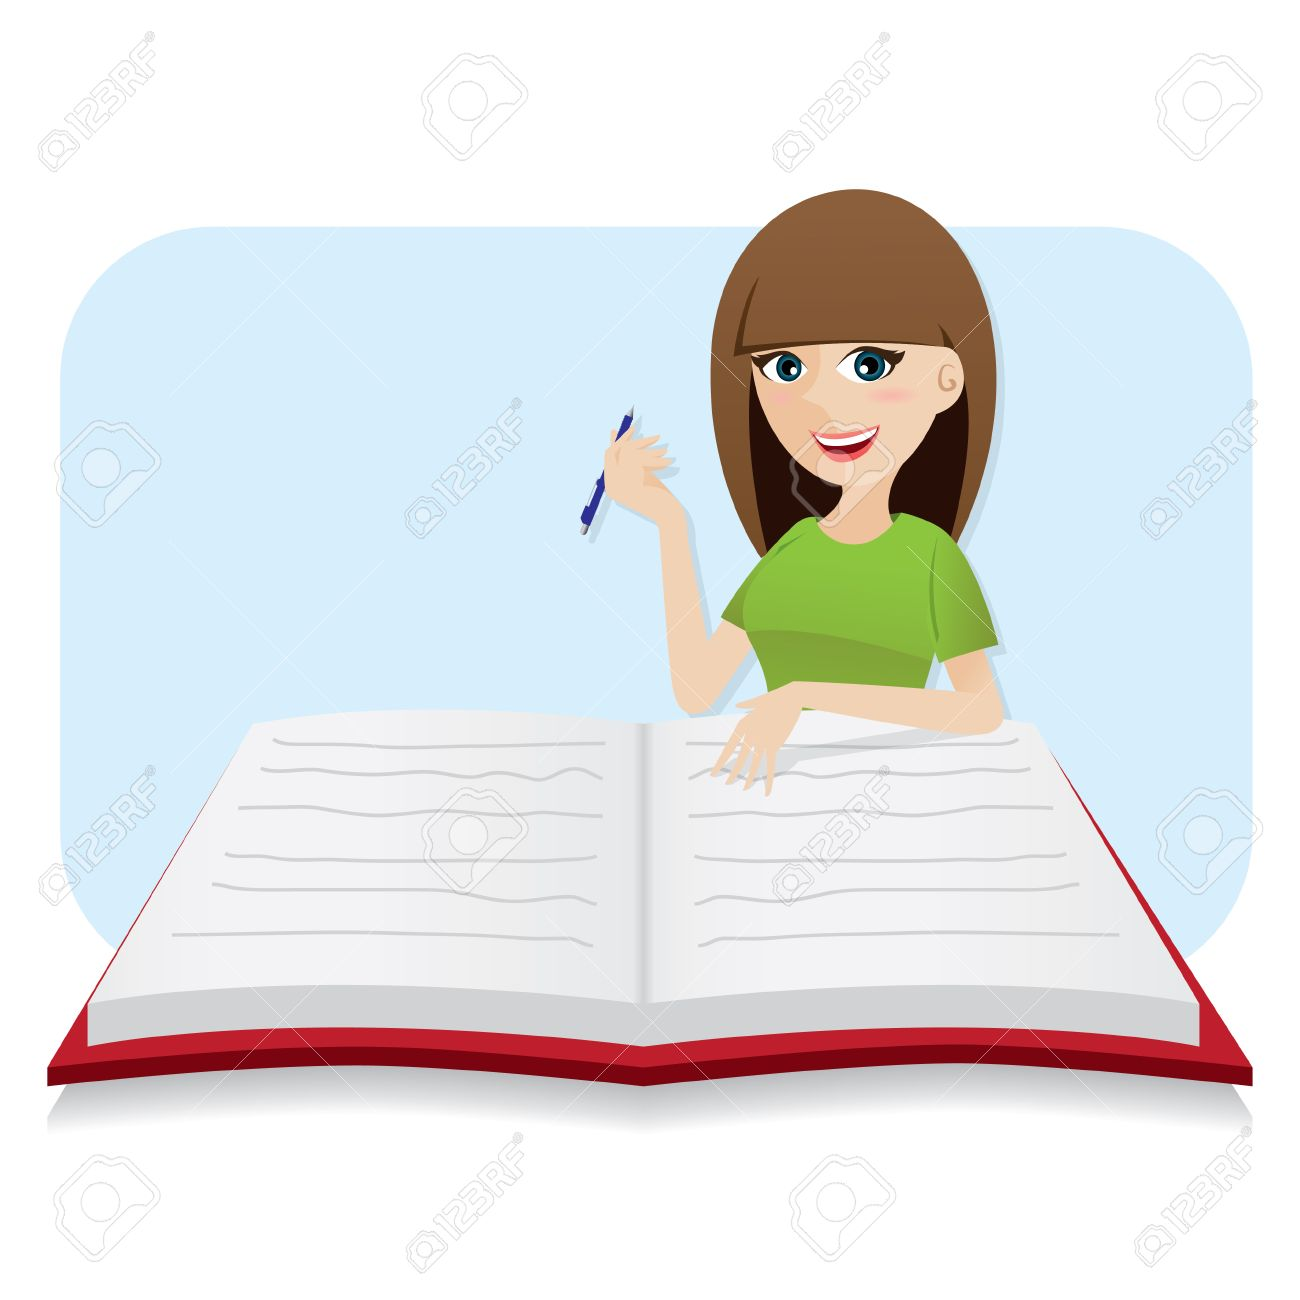 illustration of cartoon smart girl writing big diary royalty free